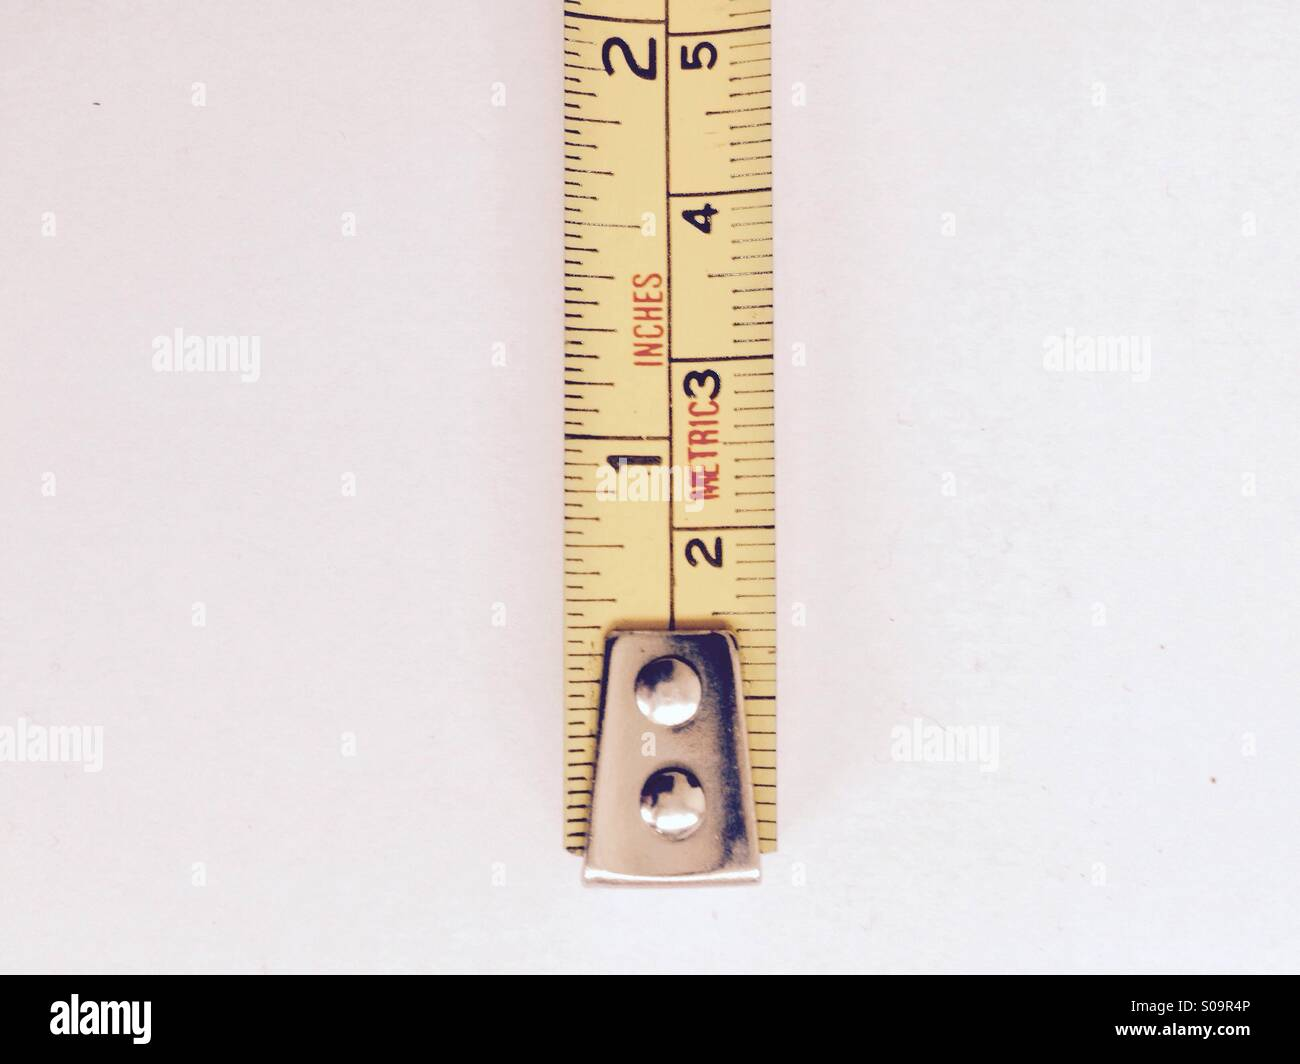 Tape Measure In Inches Meters